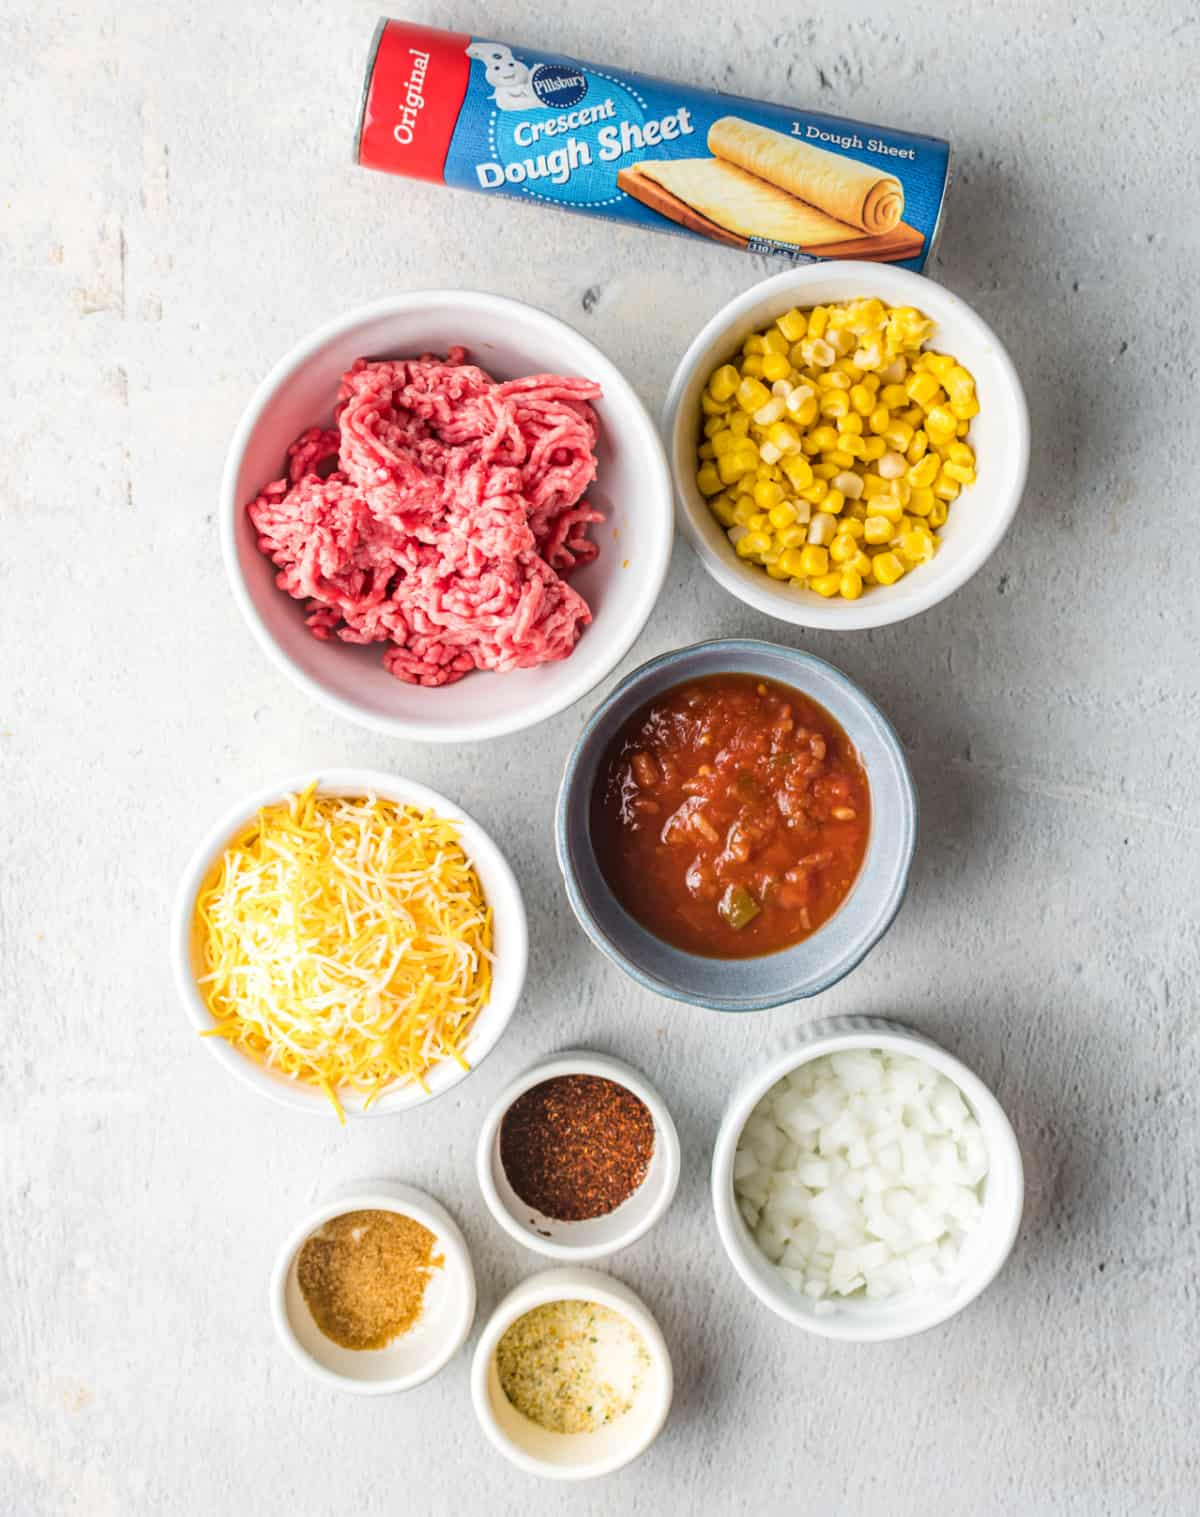 A close up photo of all the ingredients.